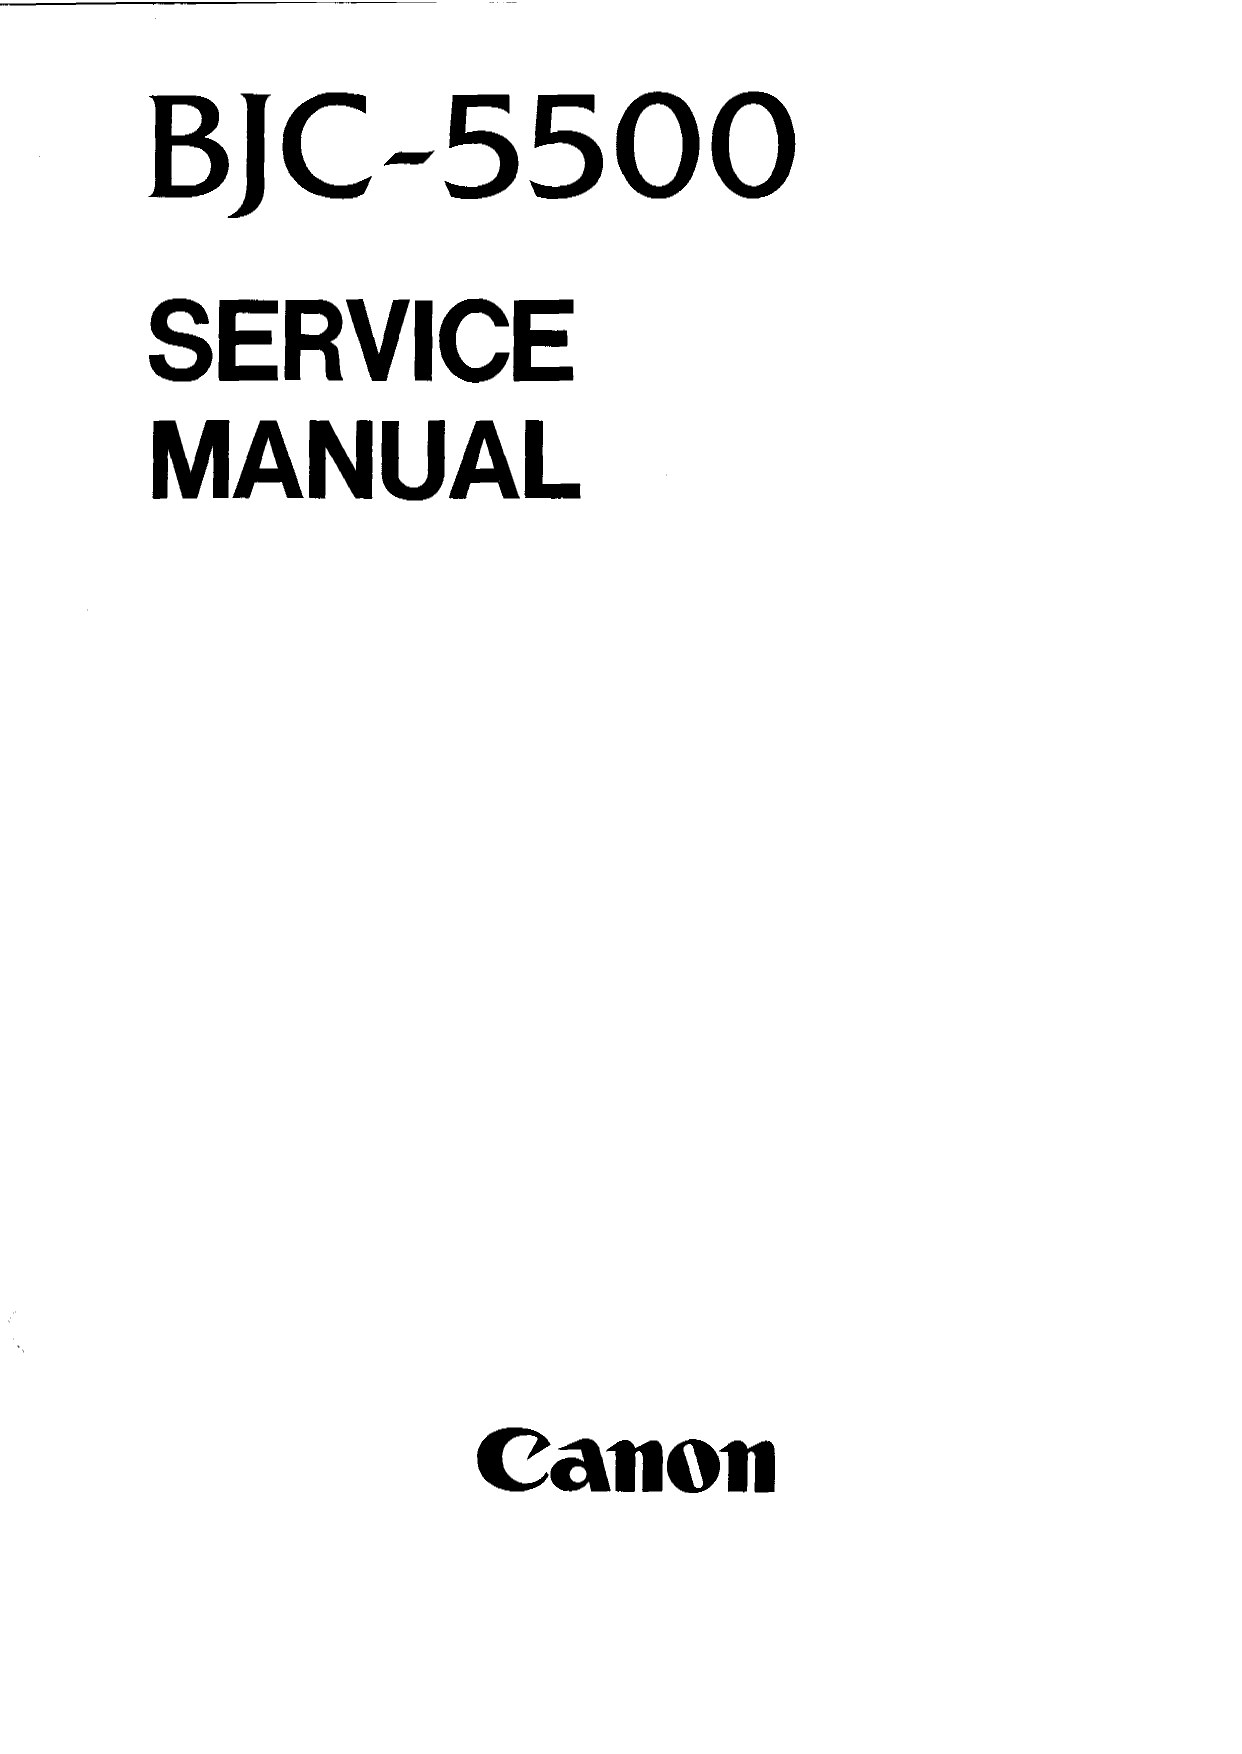 Canon BubbleJet BJC-5500 Service Manual